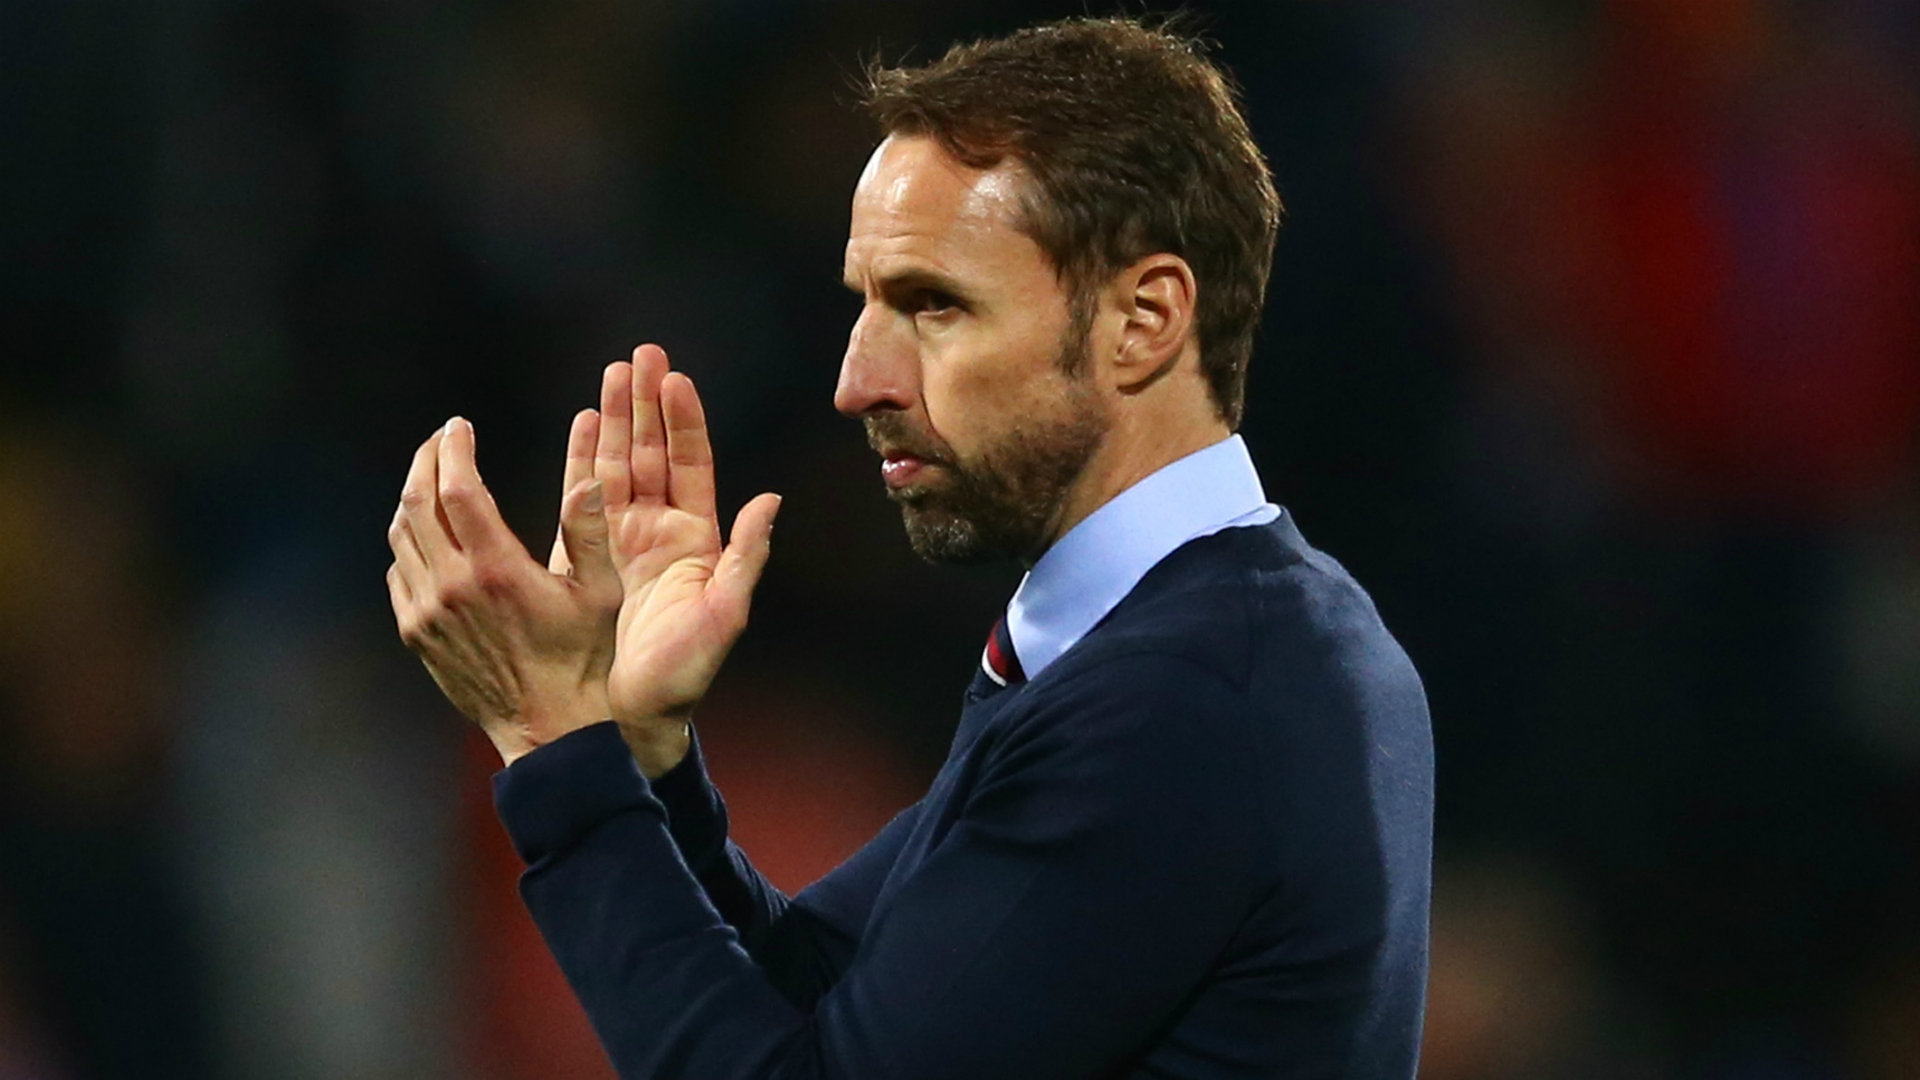 'It's painful' – Southgate after England's Nations League semi-final loss